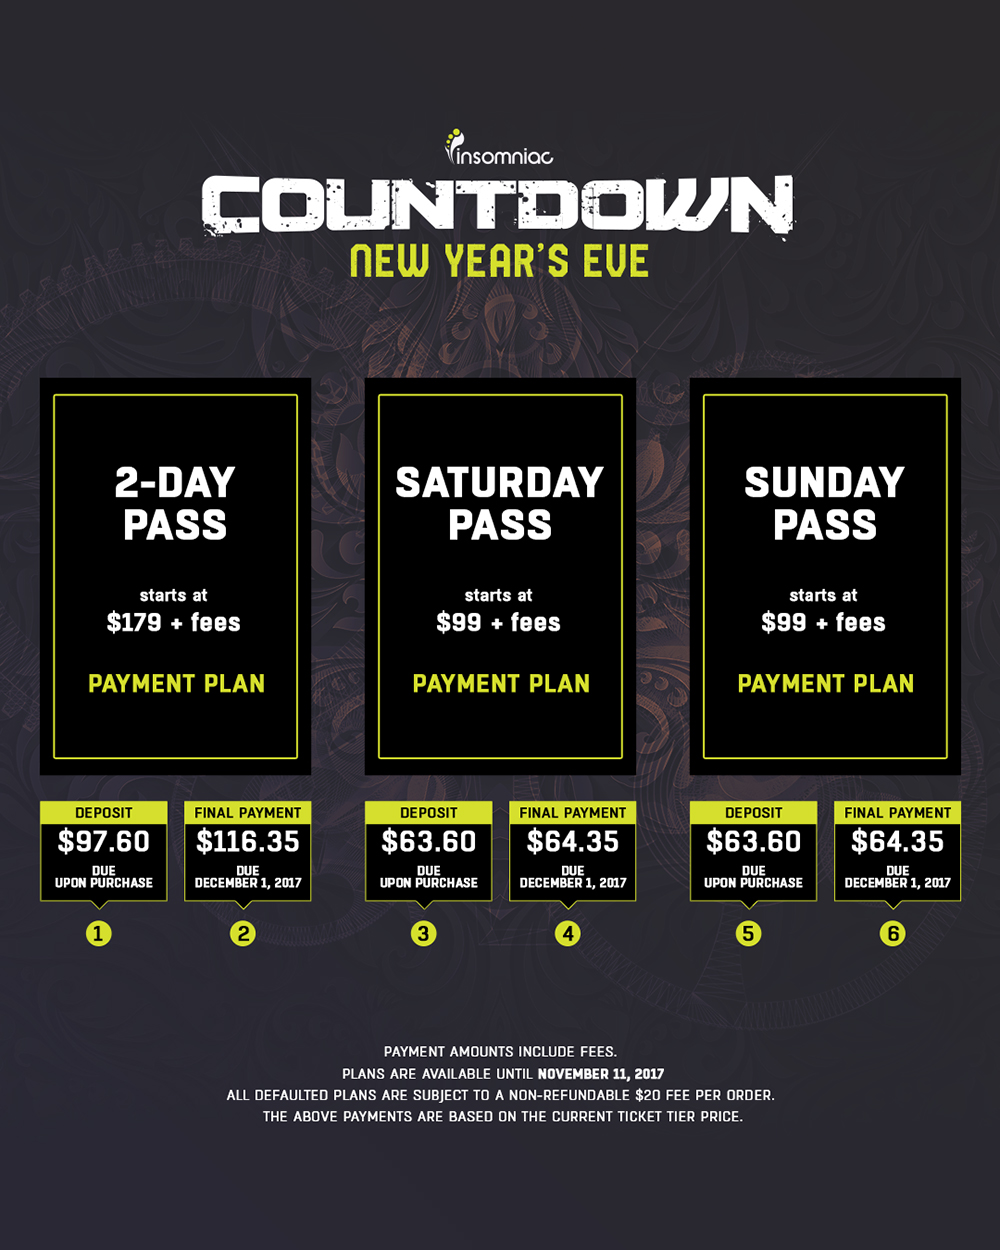 - LAYAWAY PLANSGeneral admission passes to Countdown start at $179 before taxes and fees, Headliners will have access to layaway passes starting at a low-cost deposit of $97.60 for General Admission Early two day passes, followed by a payment of $116.36 due in December. All early layaway prices include taxes, fees, shipping, and a $10 layaway charge. Layaway plans for Single Day passes start at a low-cost deposit of $63.60, with additional monthly payments.